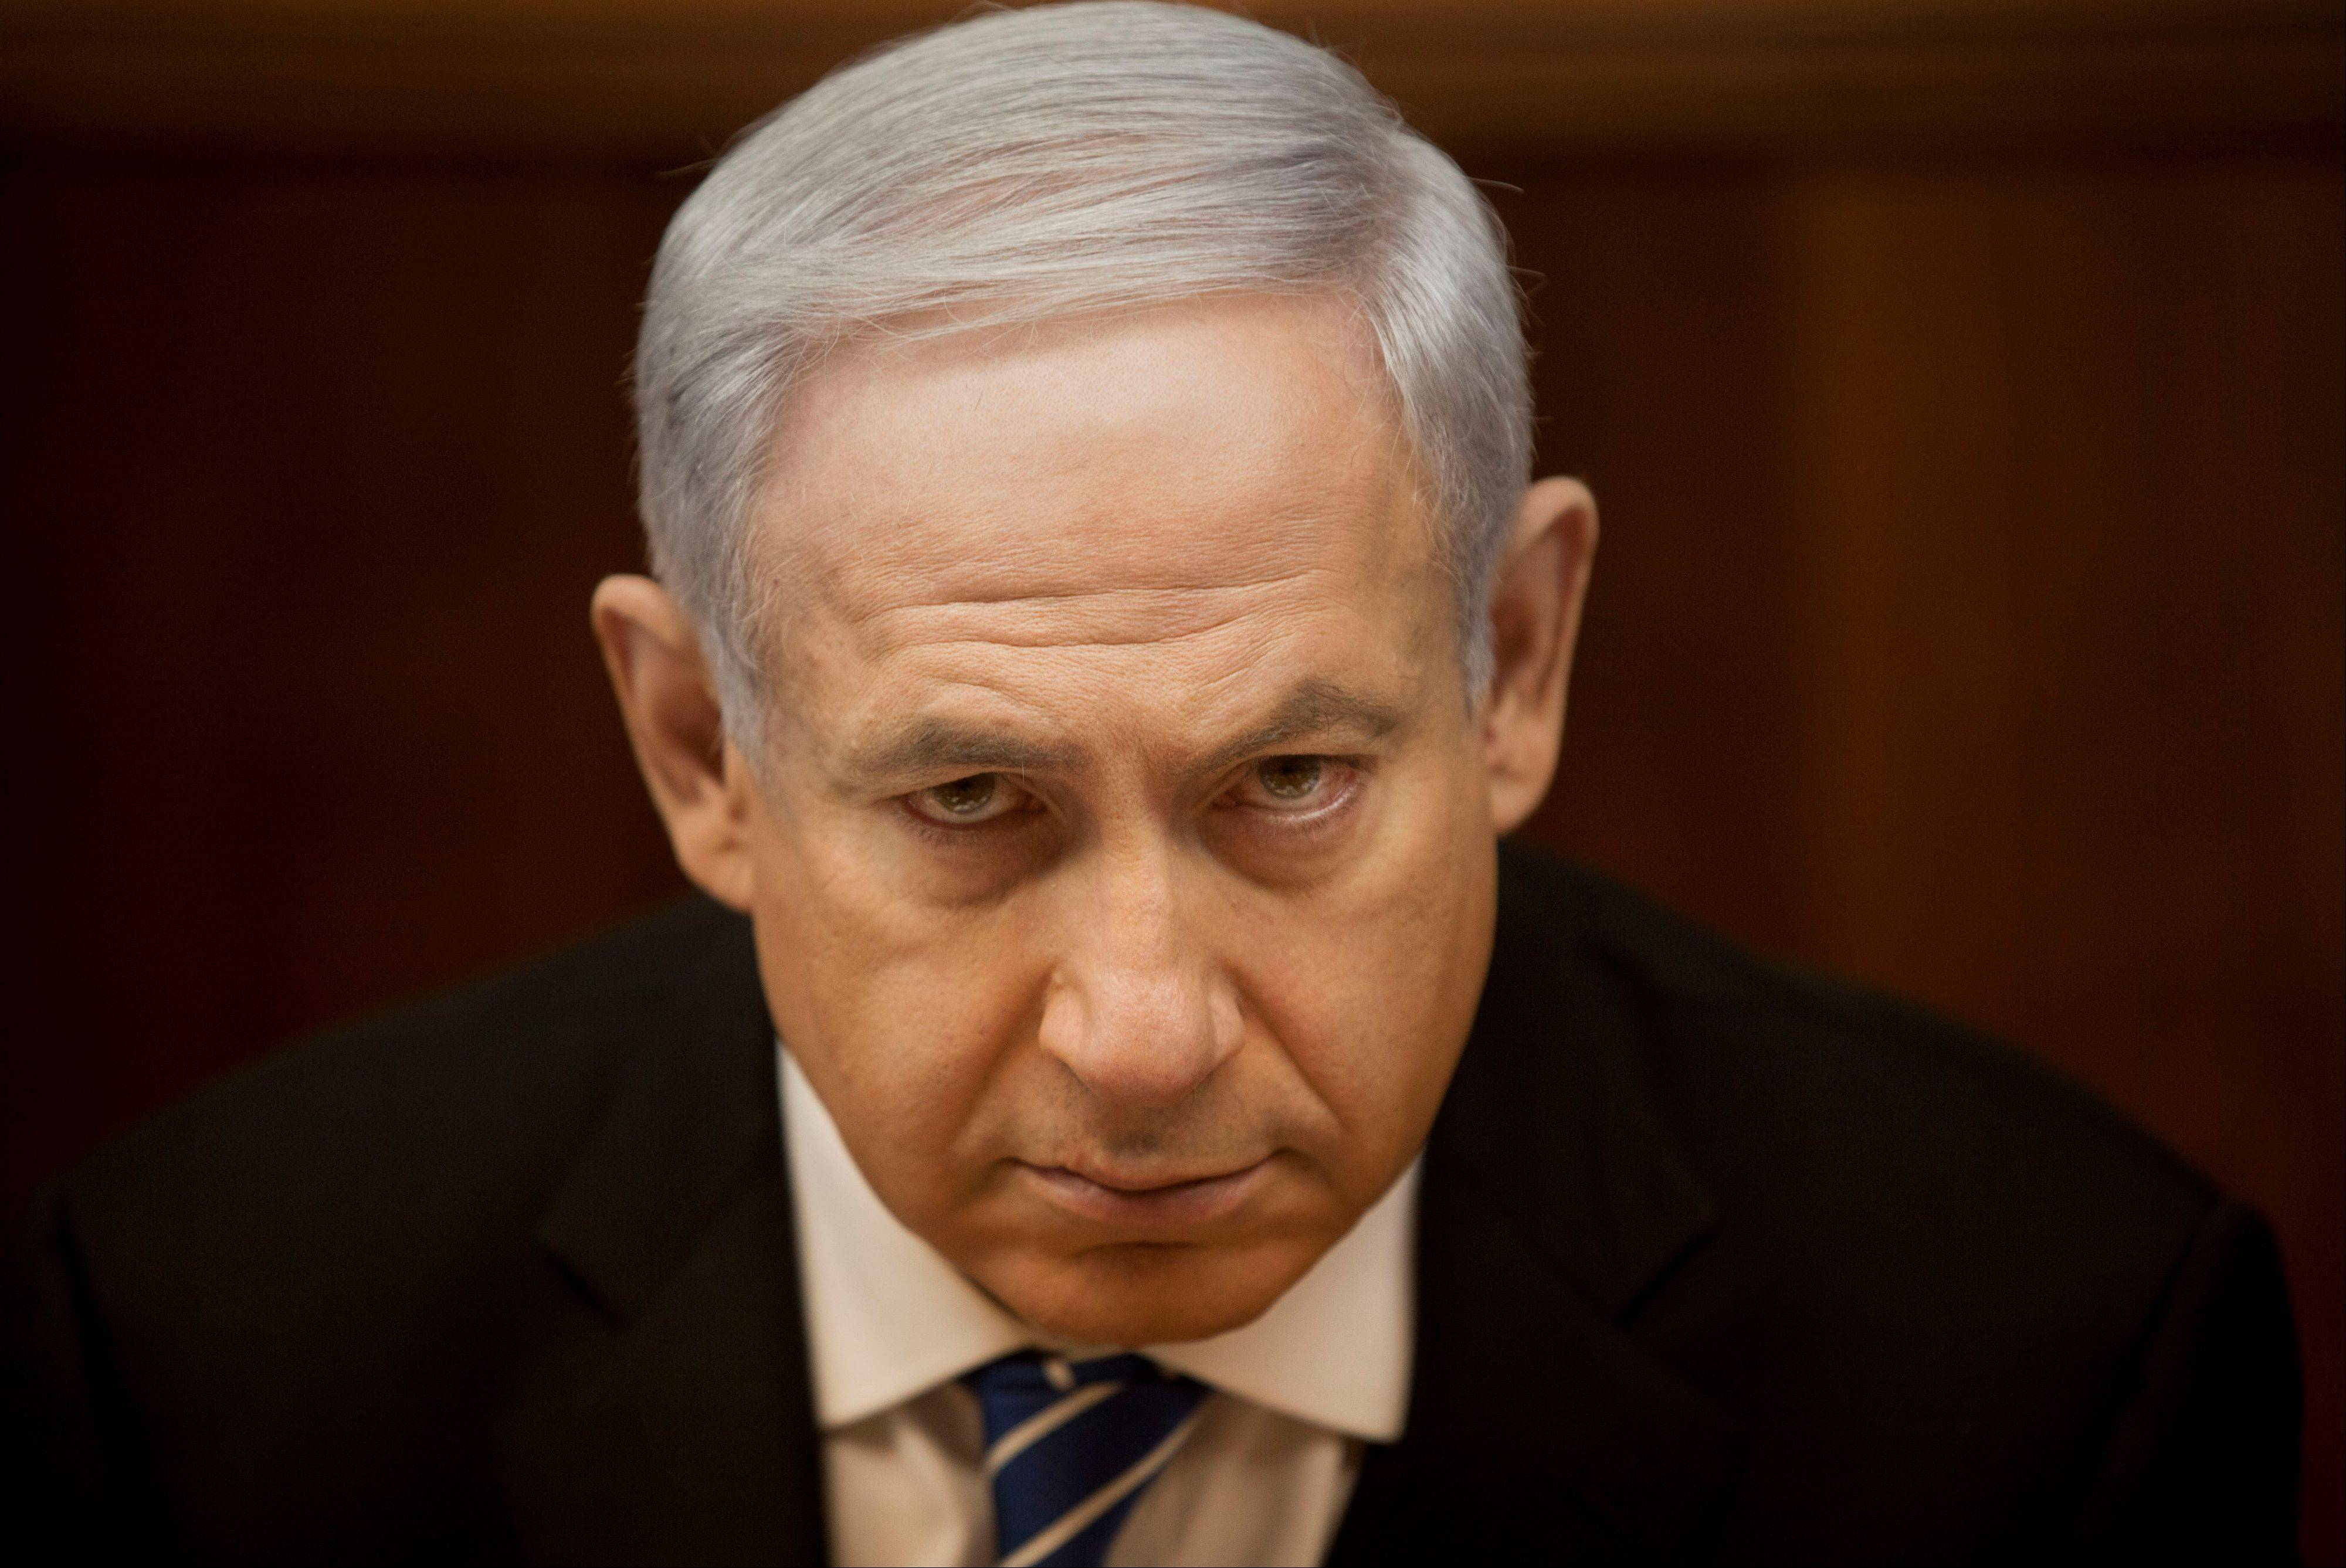 Israeli Prime Minister Benjamin Netanyahu says his new government is extending its hand in peace to the Palestinians.